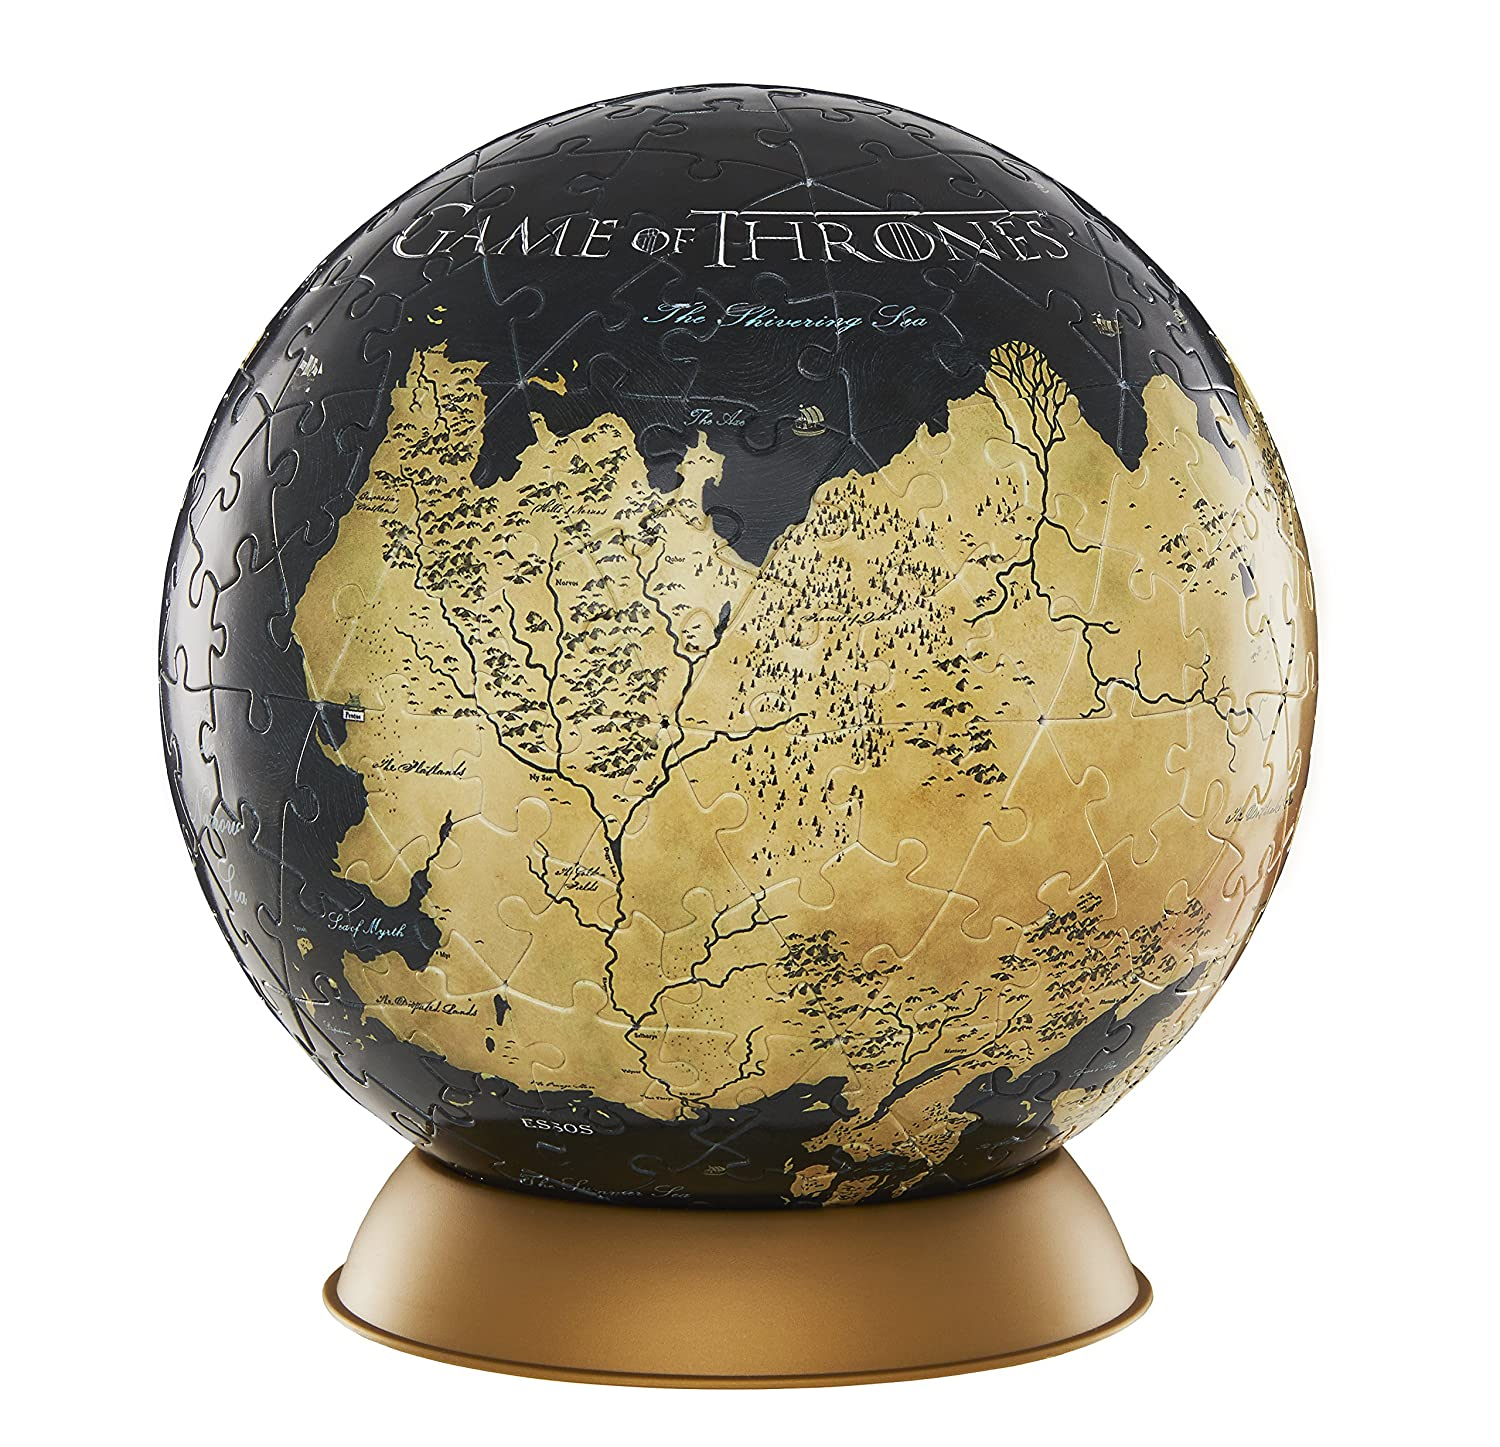 4D Cityscape Game of Thrones (GoT) 3D Westeros and Essos Globe Puzzle, on detailed map of westeros game of thrones, crown lands map game of thrones, google map game of thrones,